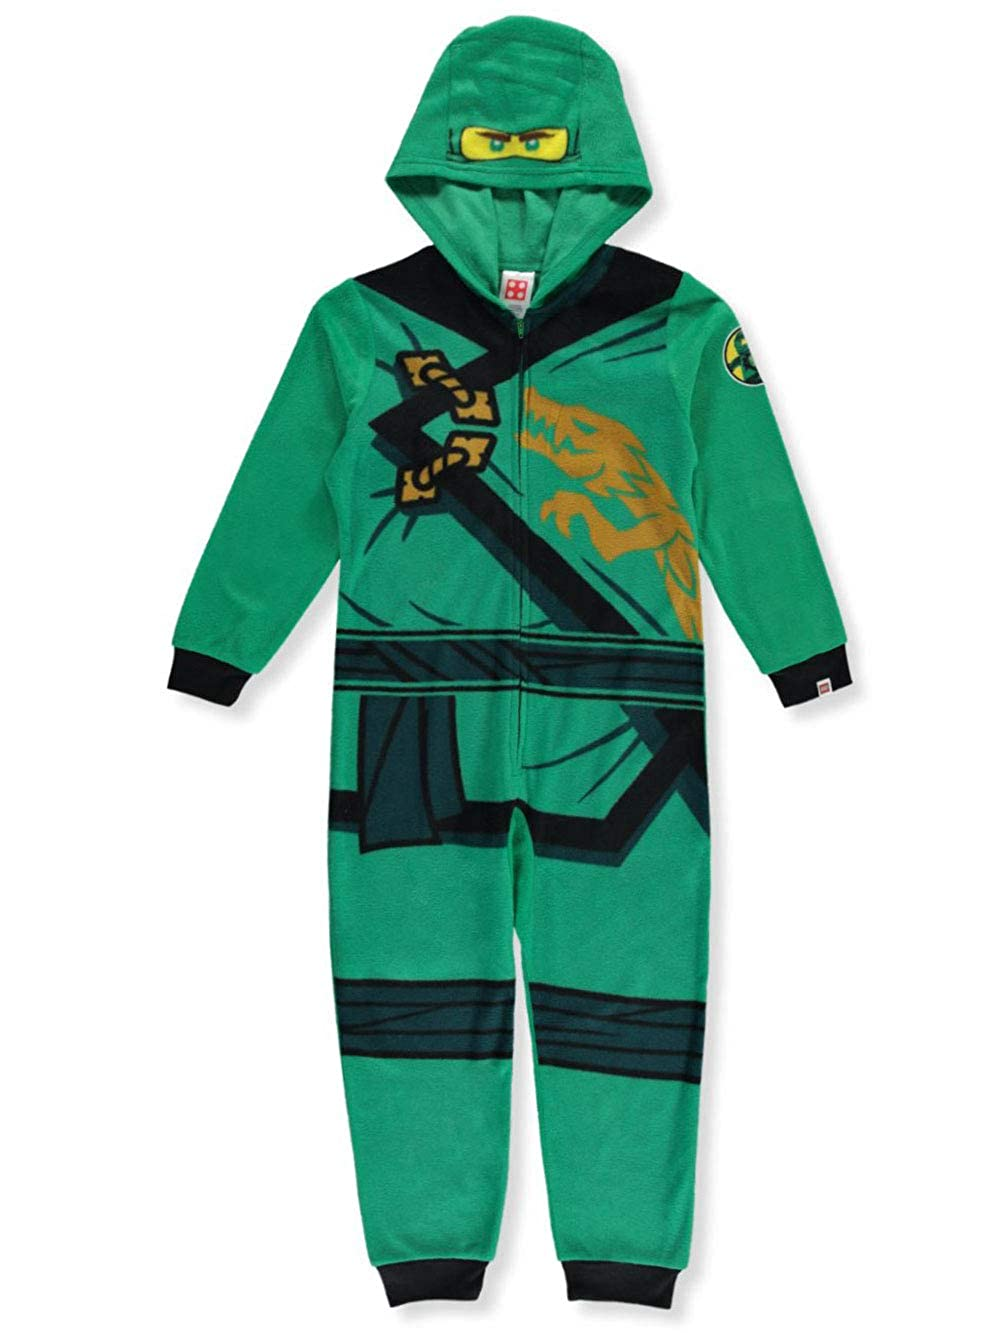 LEGO Ninjago Little Boys' Costume, Onesie Pajamas New Look, All-in-one Set